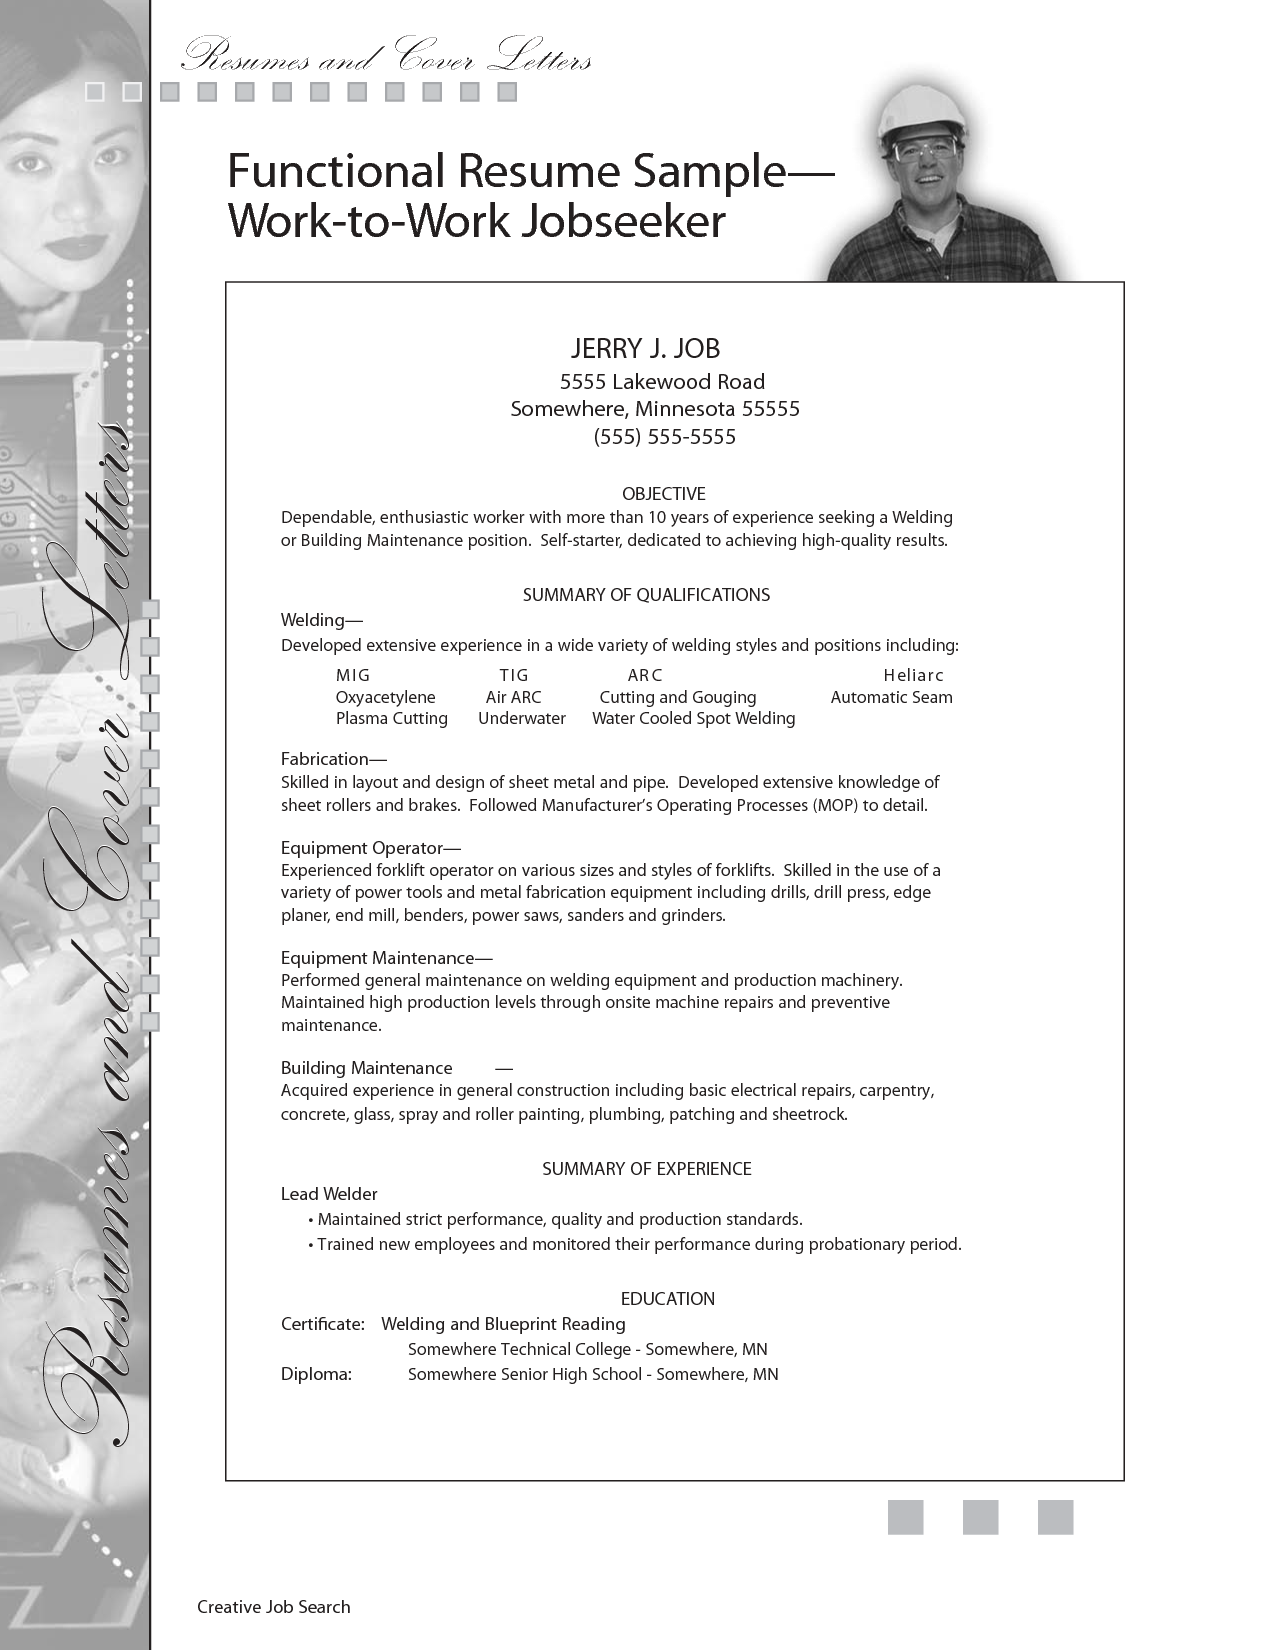 sample resume for welding position | Sample Building Maintenance ...